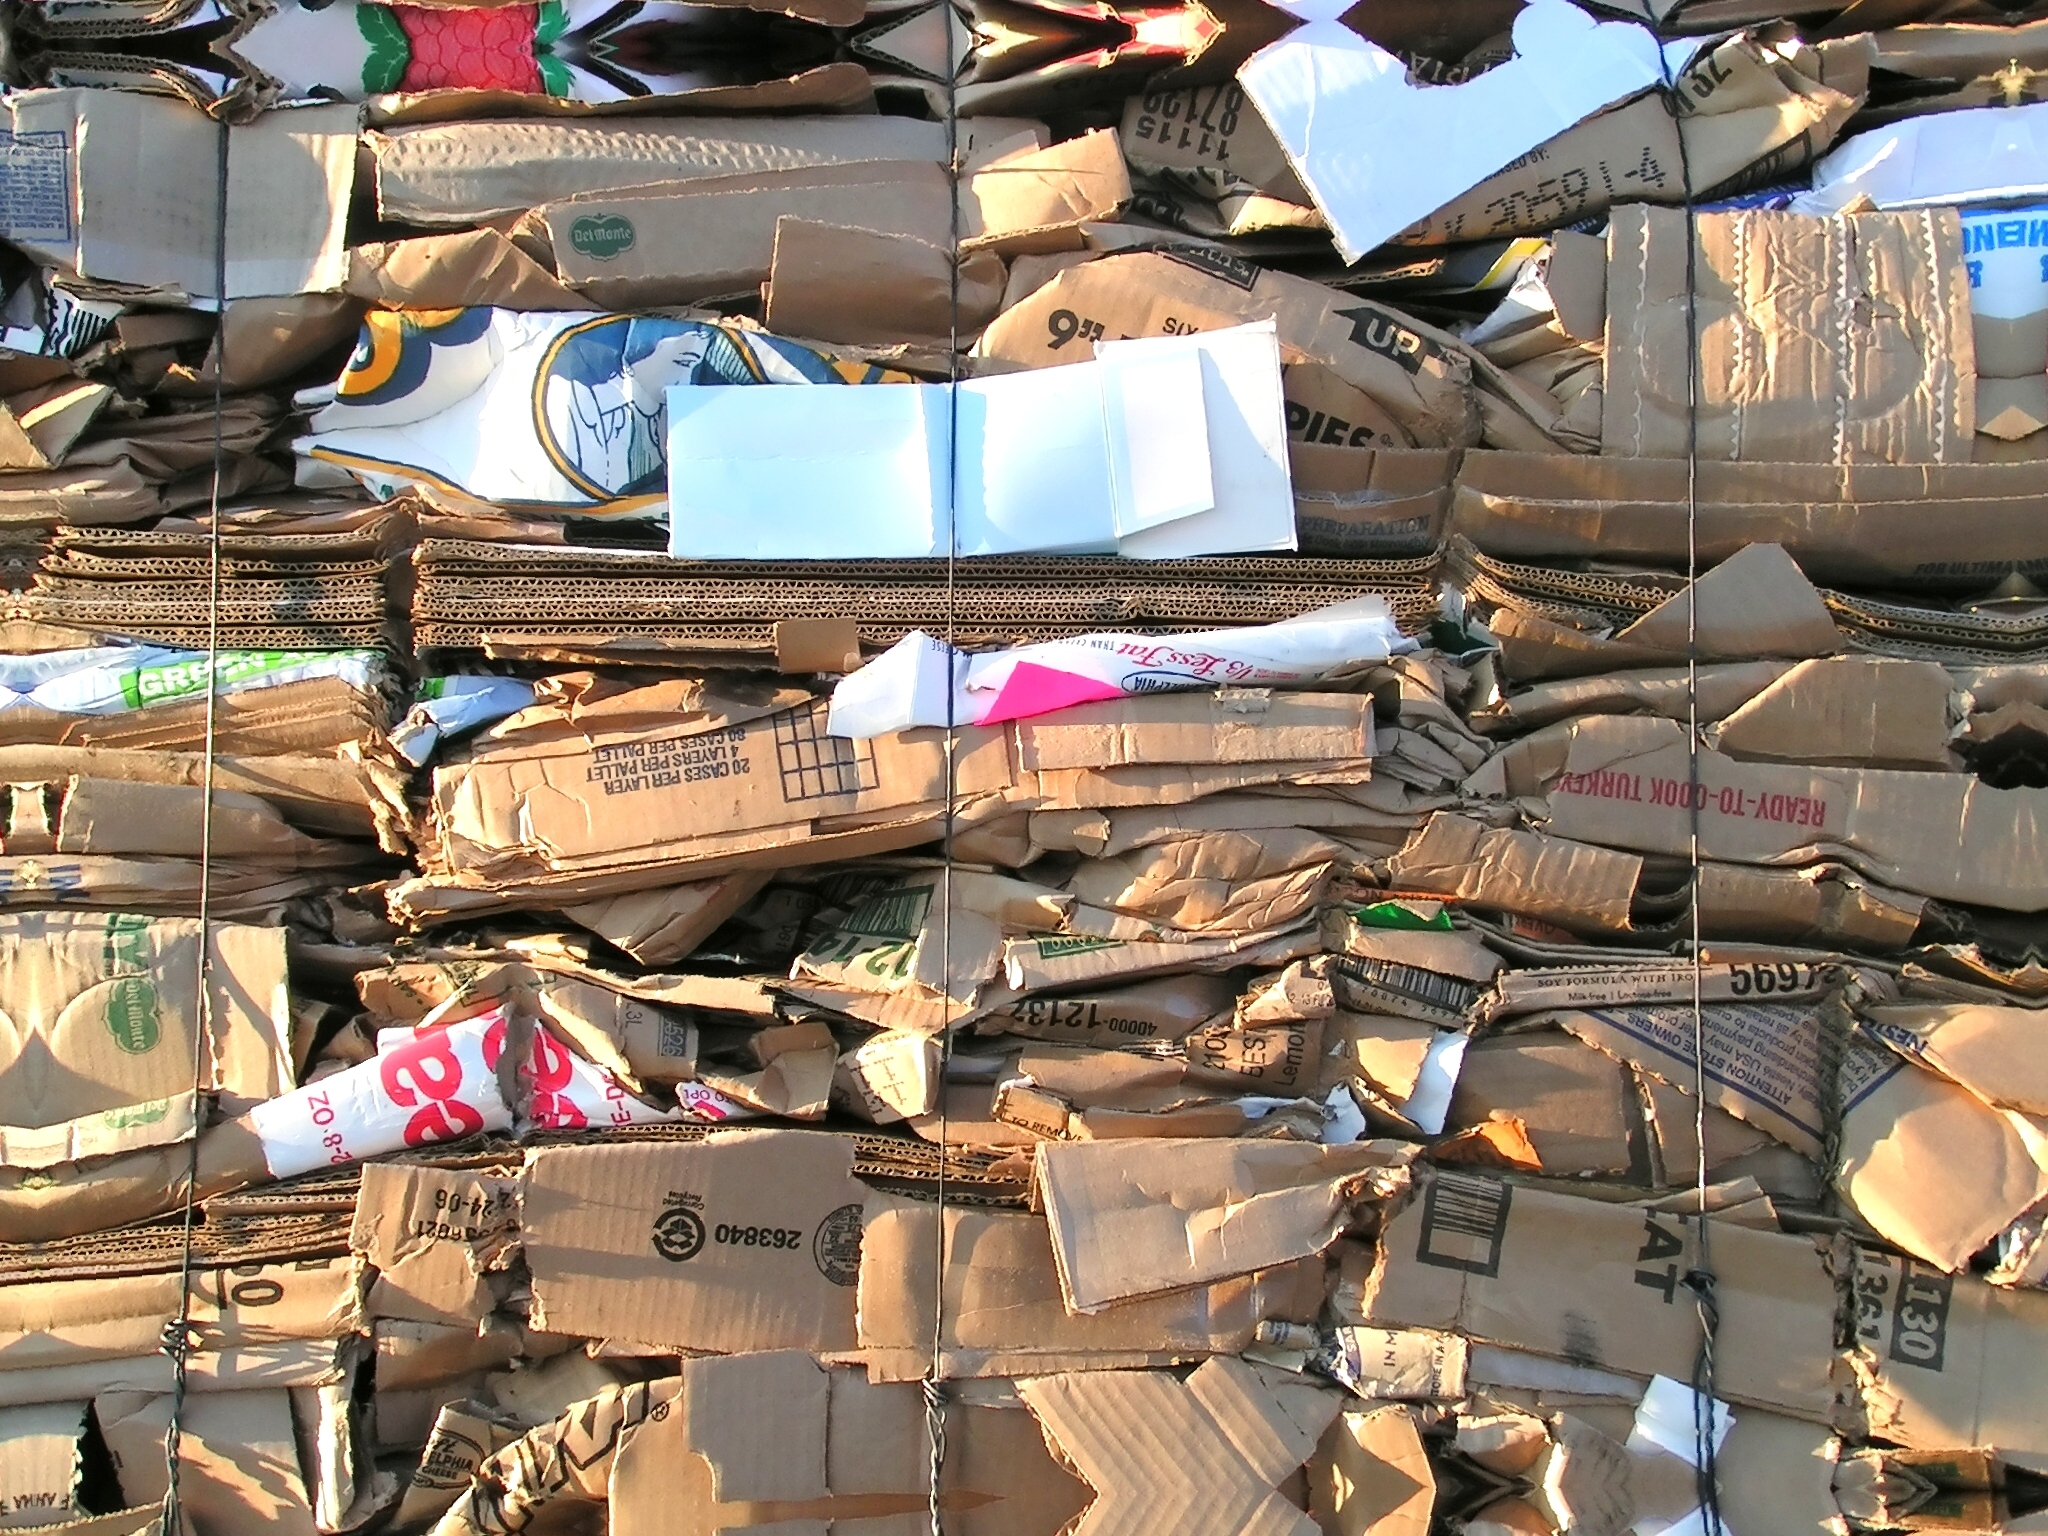 Cardboard boxes in piles for recycling